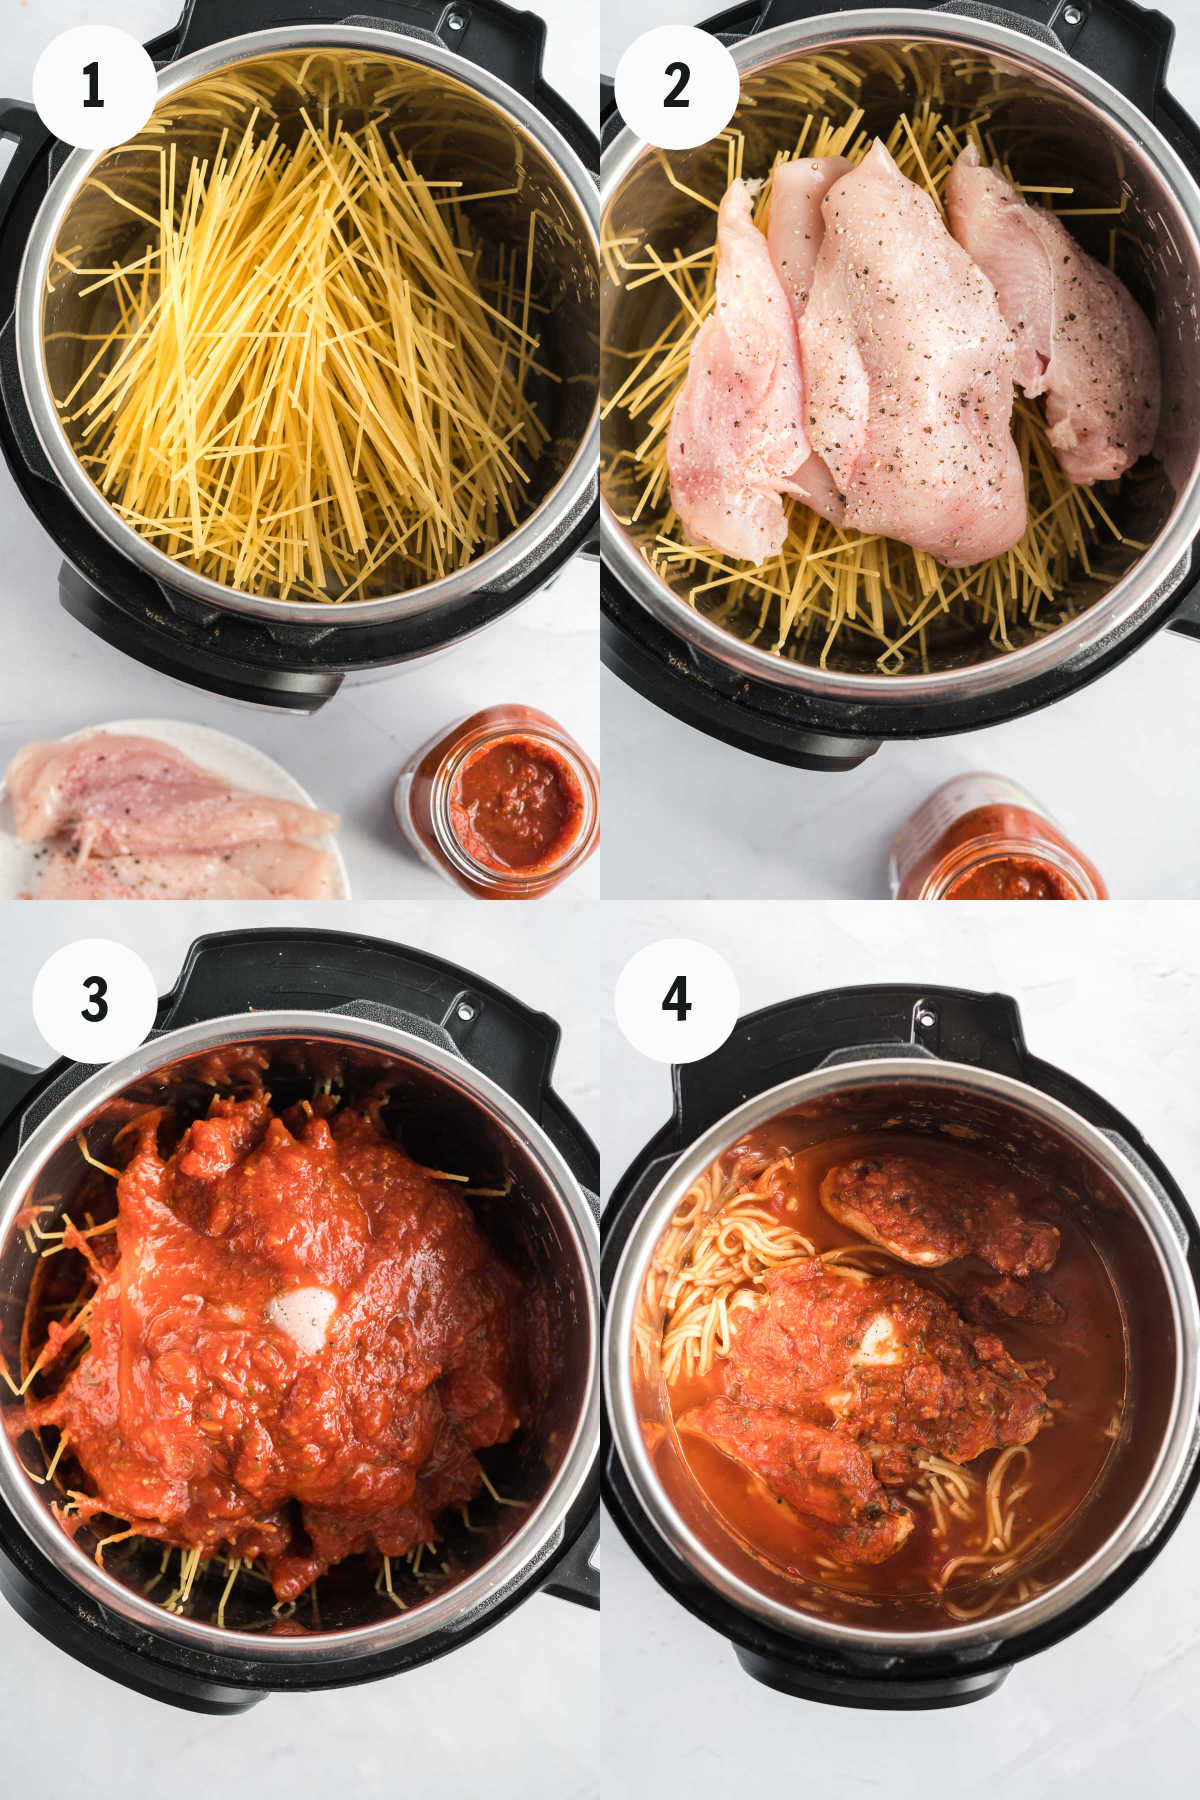 Process images showing how to make chicken spaghetti.